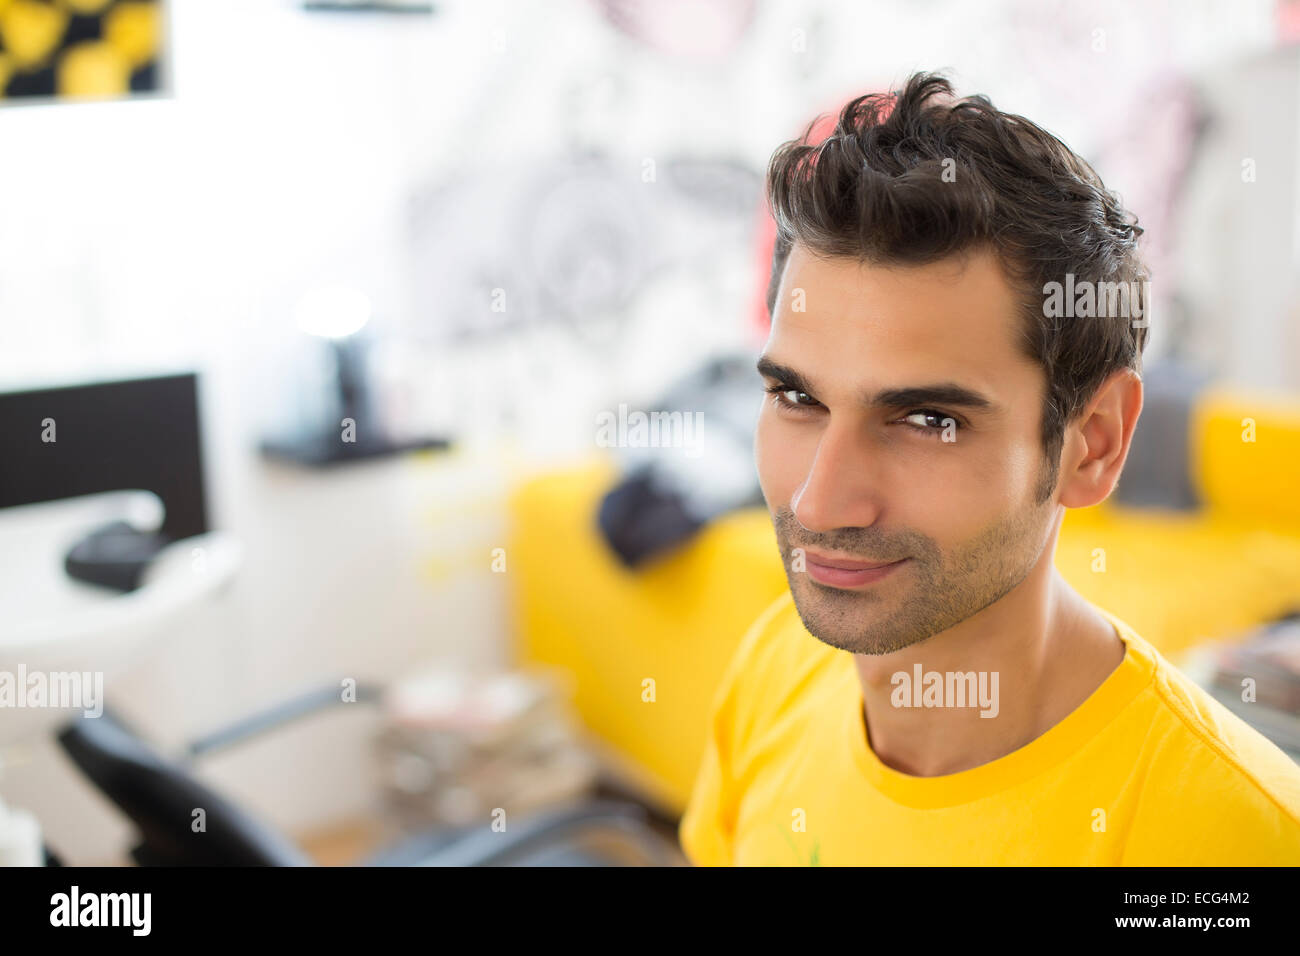 Young man at hairdresser salon - Stock Image